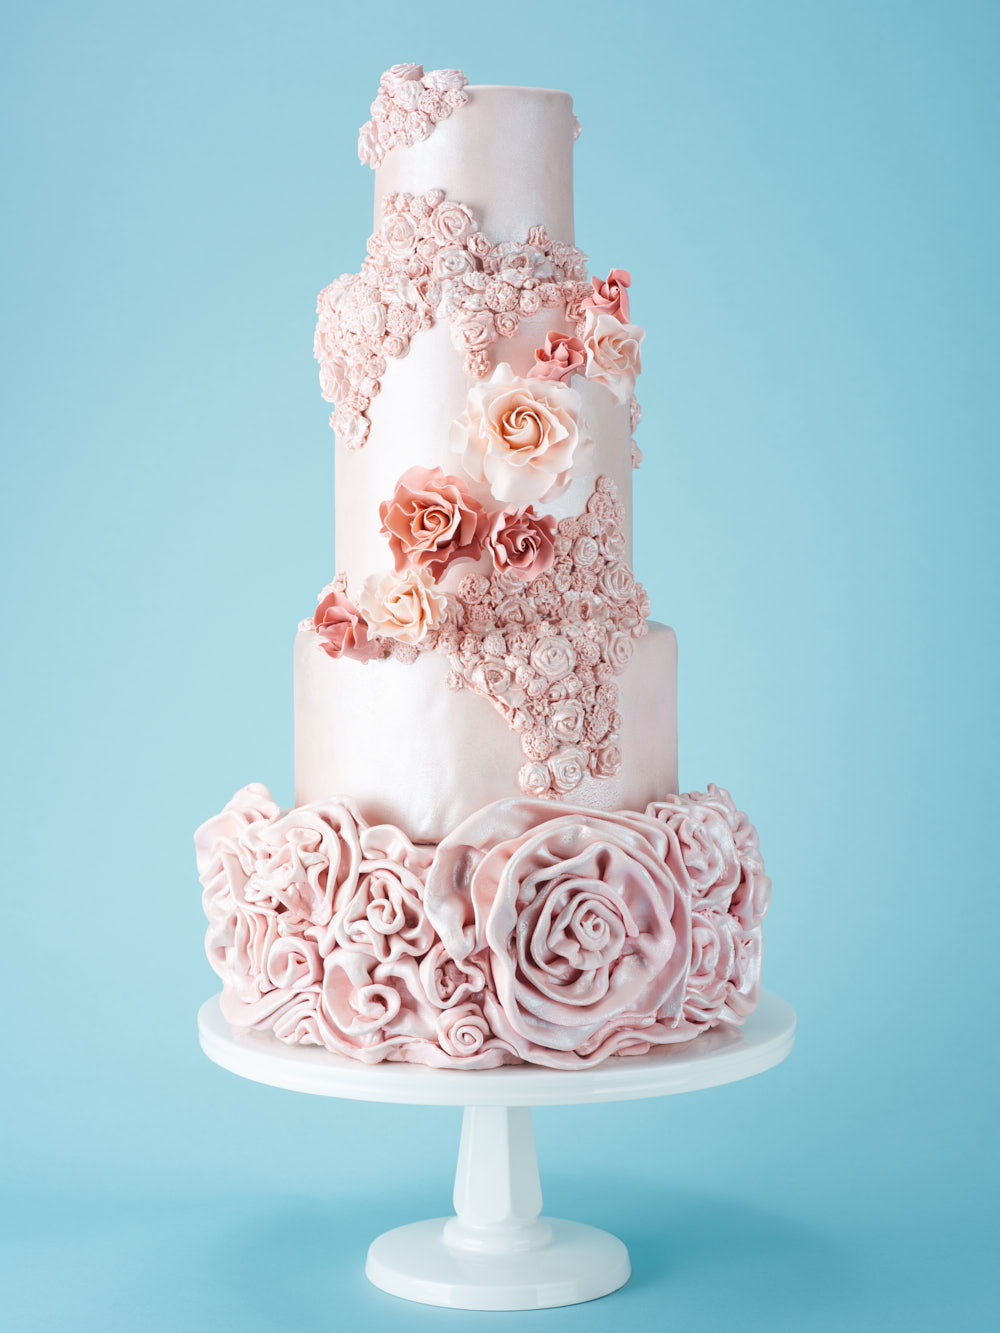 Pink Cake | Amy Roth Photo.jpg